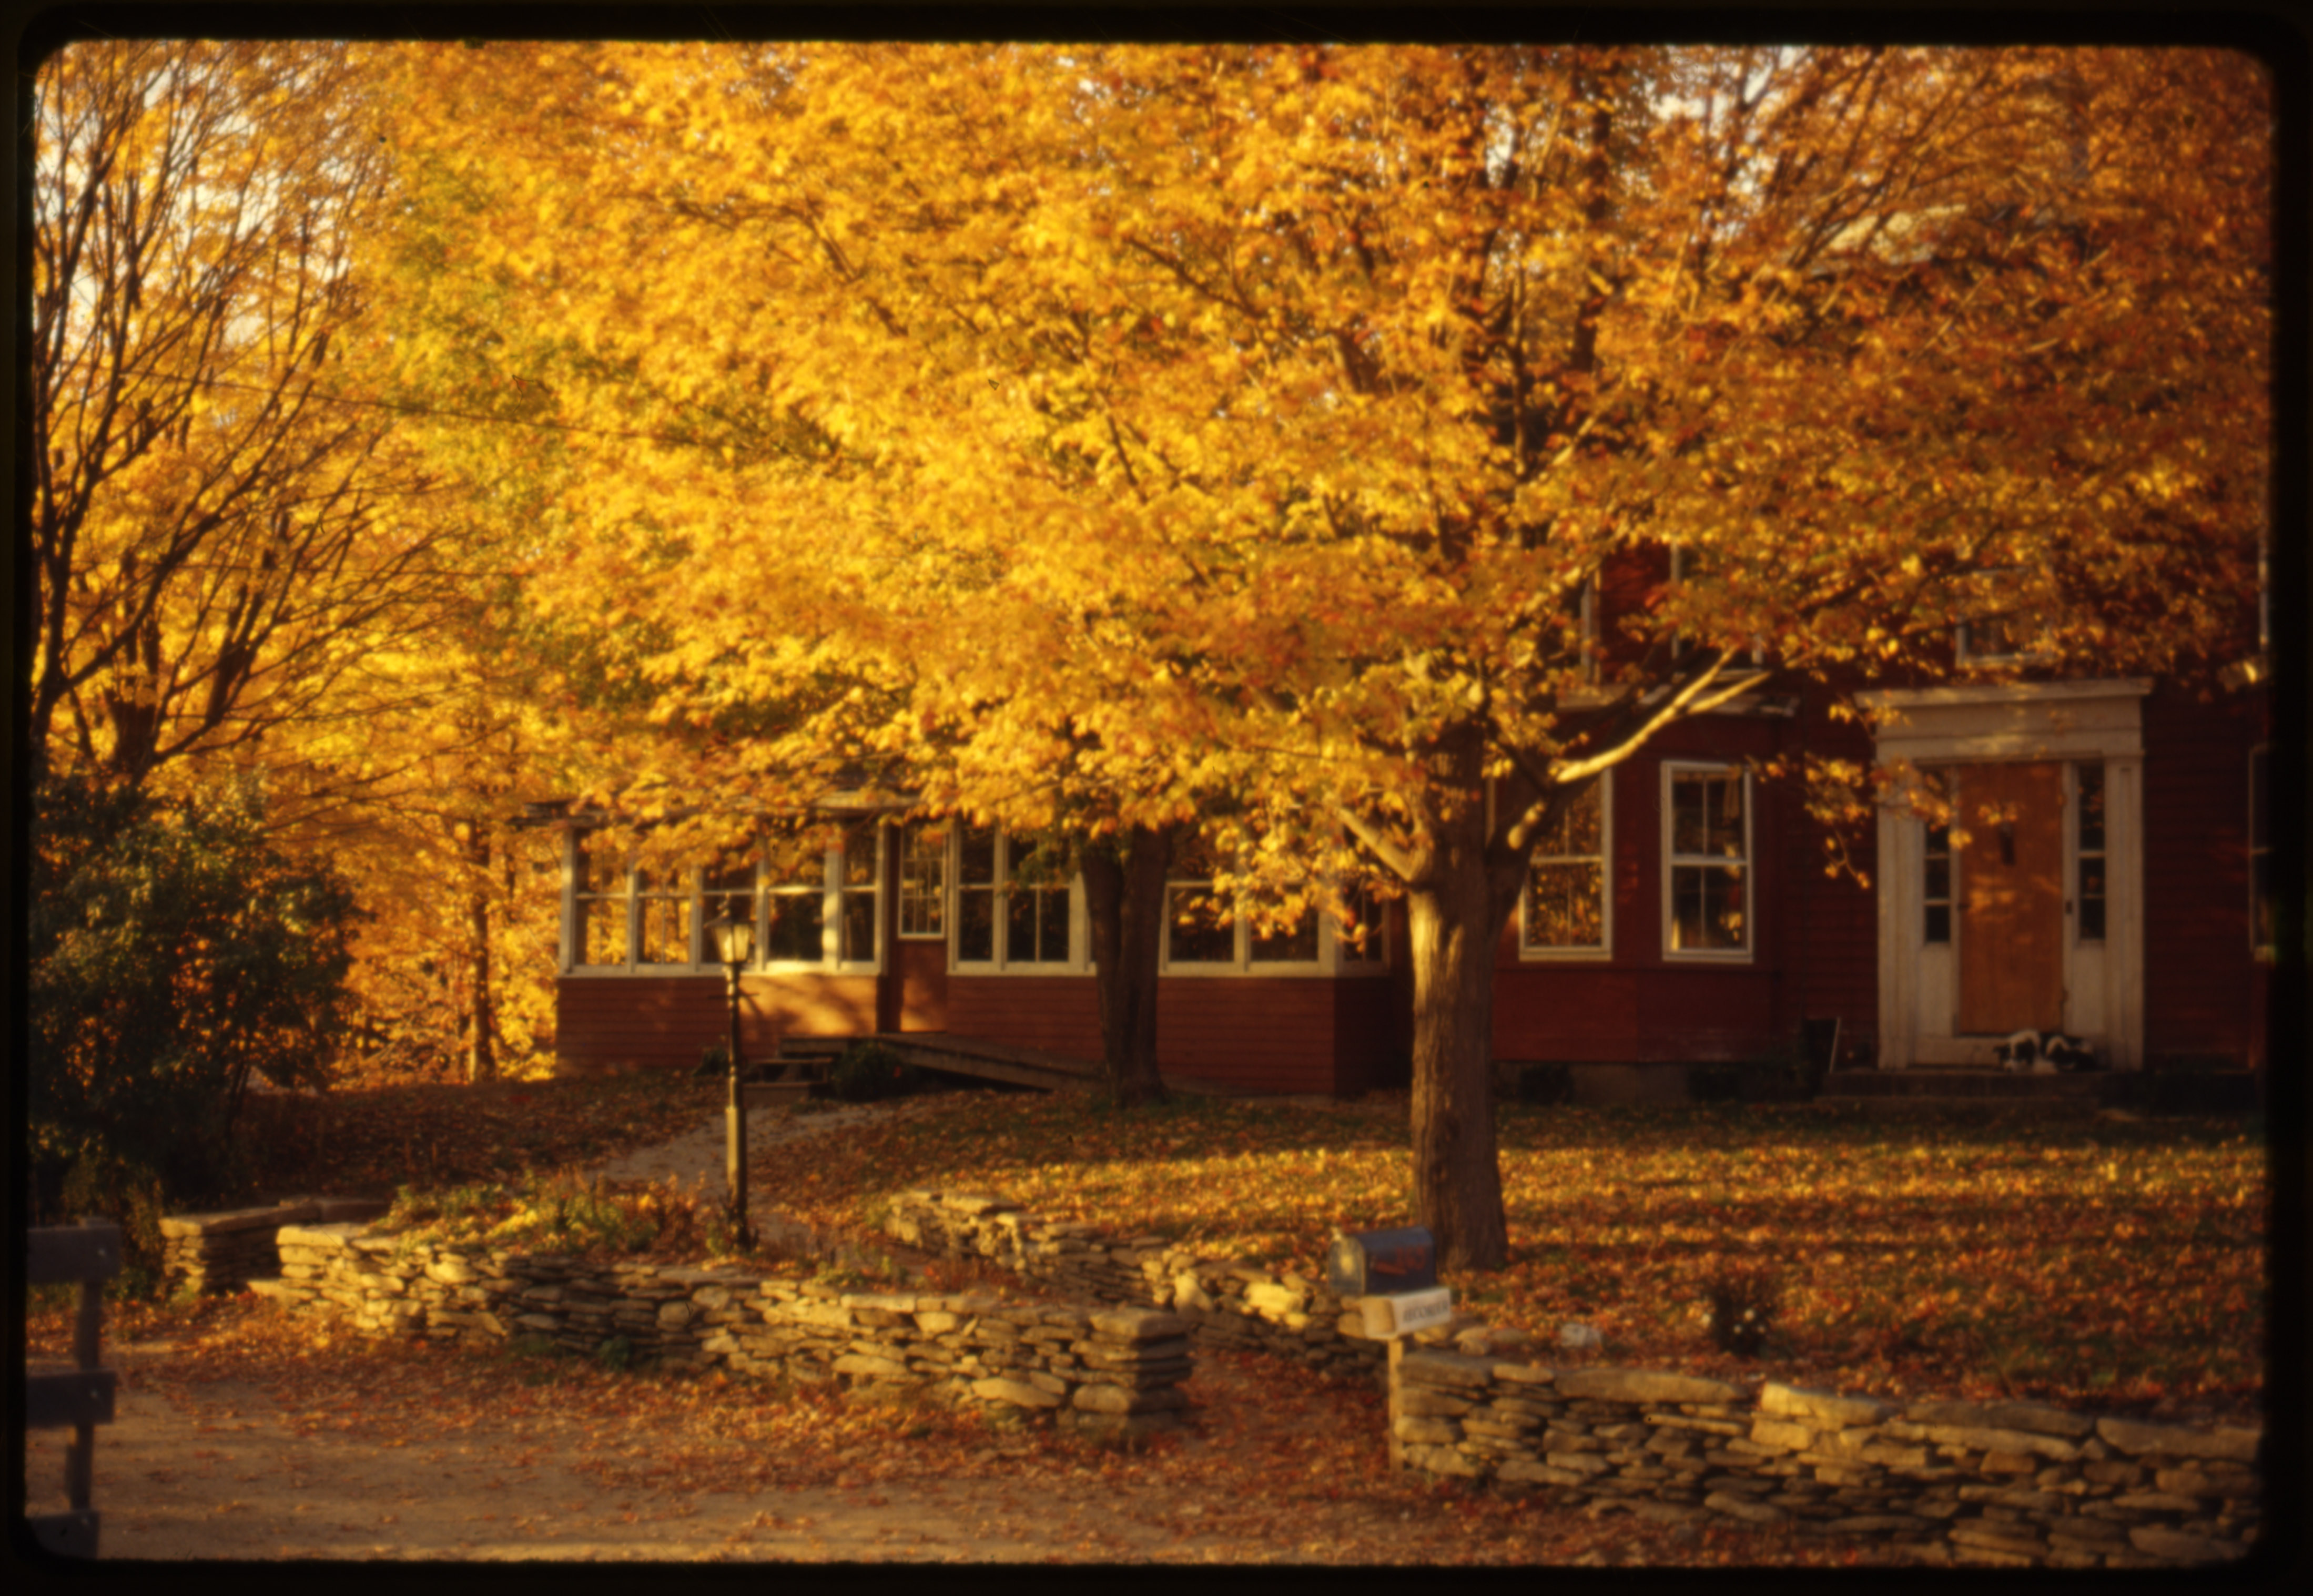 Image of The Farm in fall color, Oct. 1980